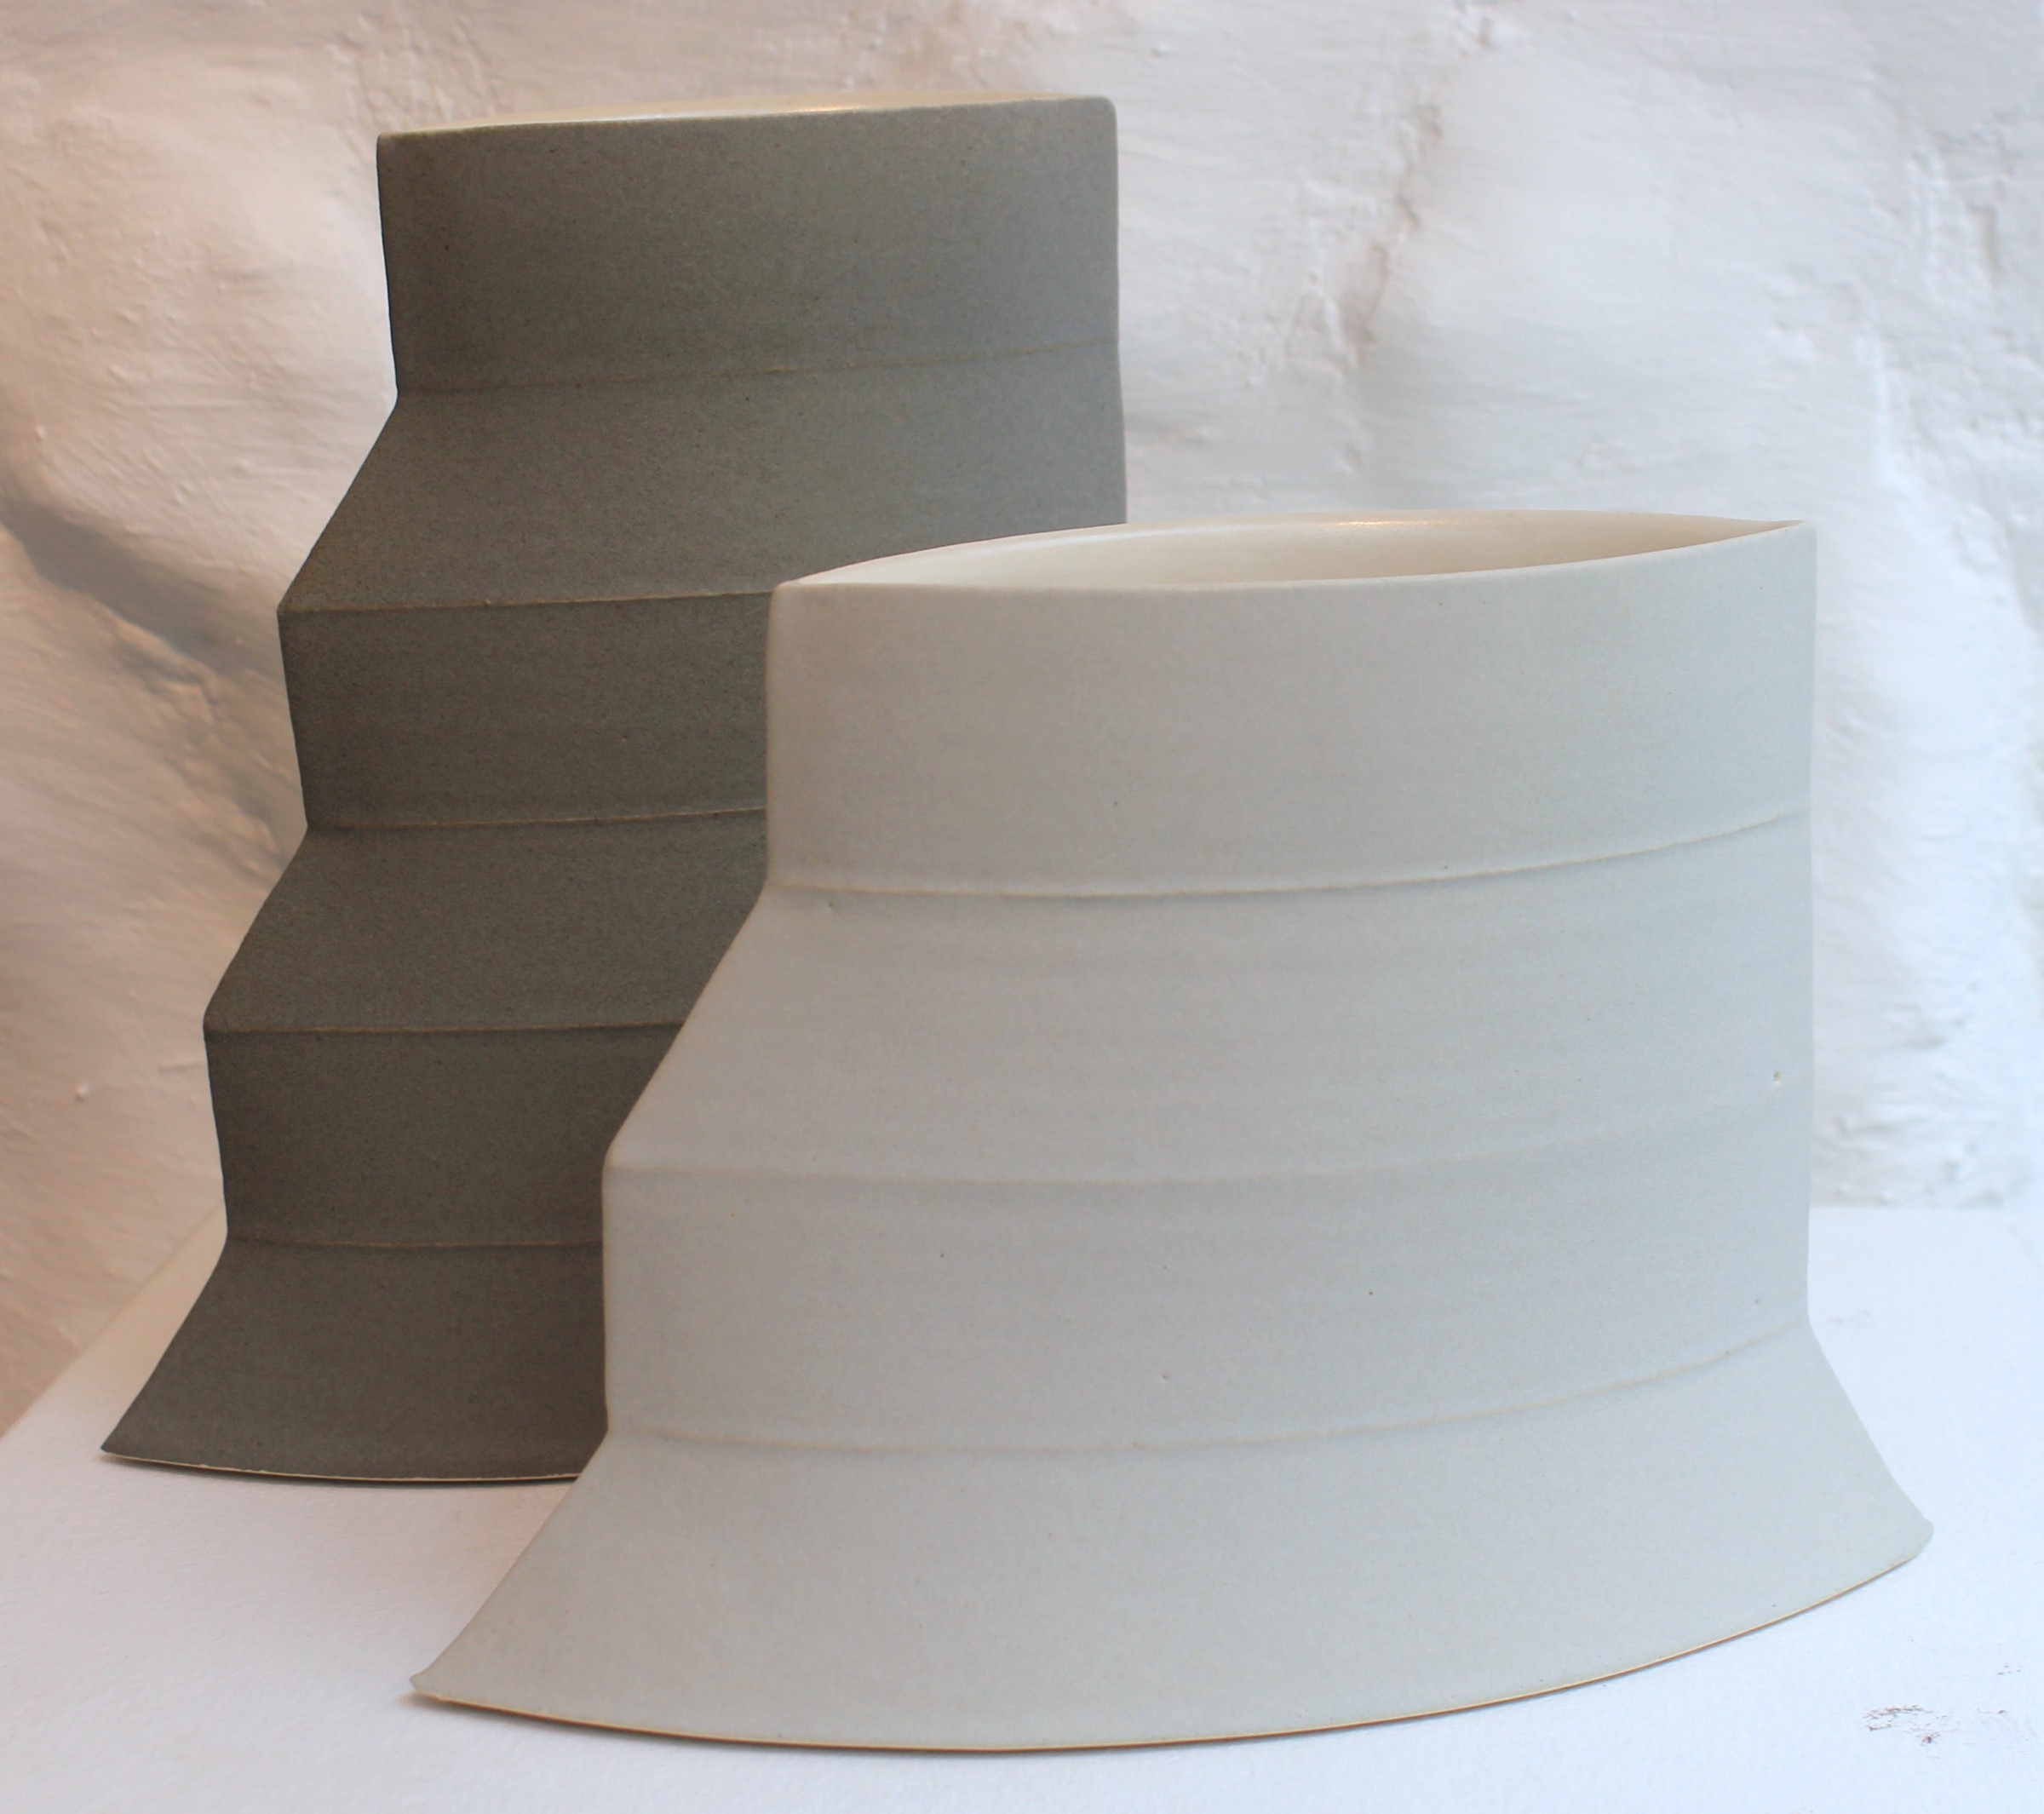 "<span class=""link fancybox-details-link""><a href=""/artists/33-sun-kim/works/5742-sun-kim-pair-of-geometric-vessels-2018/"">View Detail Page</a></span><div class=""artist""><strong>Sun Kim</strong></div> <div class=""title""><em>Pair of Geometric Vessels</em>, 2018</div> <div class=""signed_and_dated"">stamped by the artist</div> <div class=""medium"">porcelain</div> <div class=""dimensions"">C1: 9 x 17 x 4 cm<br /> 3 1/2 x 6 3/4 x 1 5/8 inches<br /> C2: h 14 x w 20 x d 4 cm</div><div class=""price"">£675.00</div><div class=""copyright_line"">OwnArt: £ 67.50 x 10 Months, 0% APR</div>"